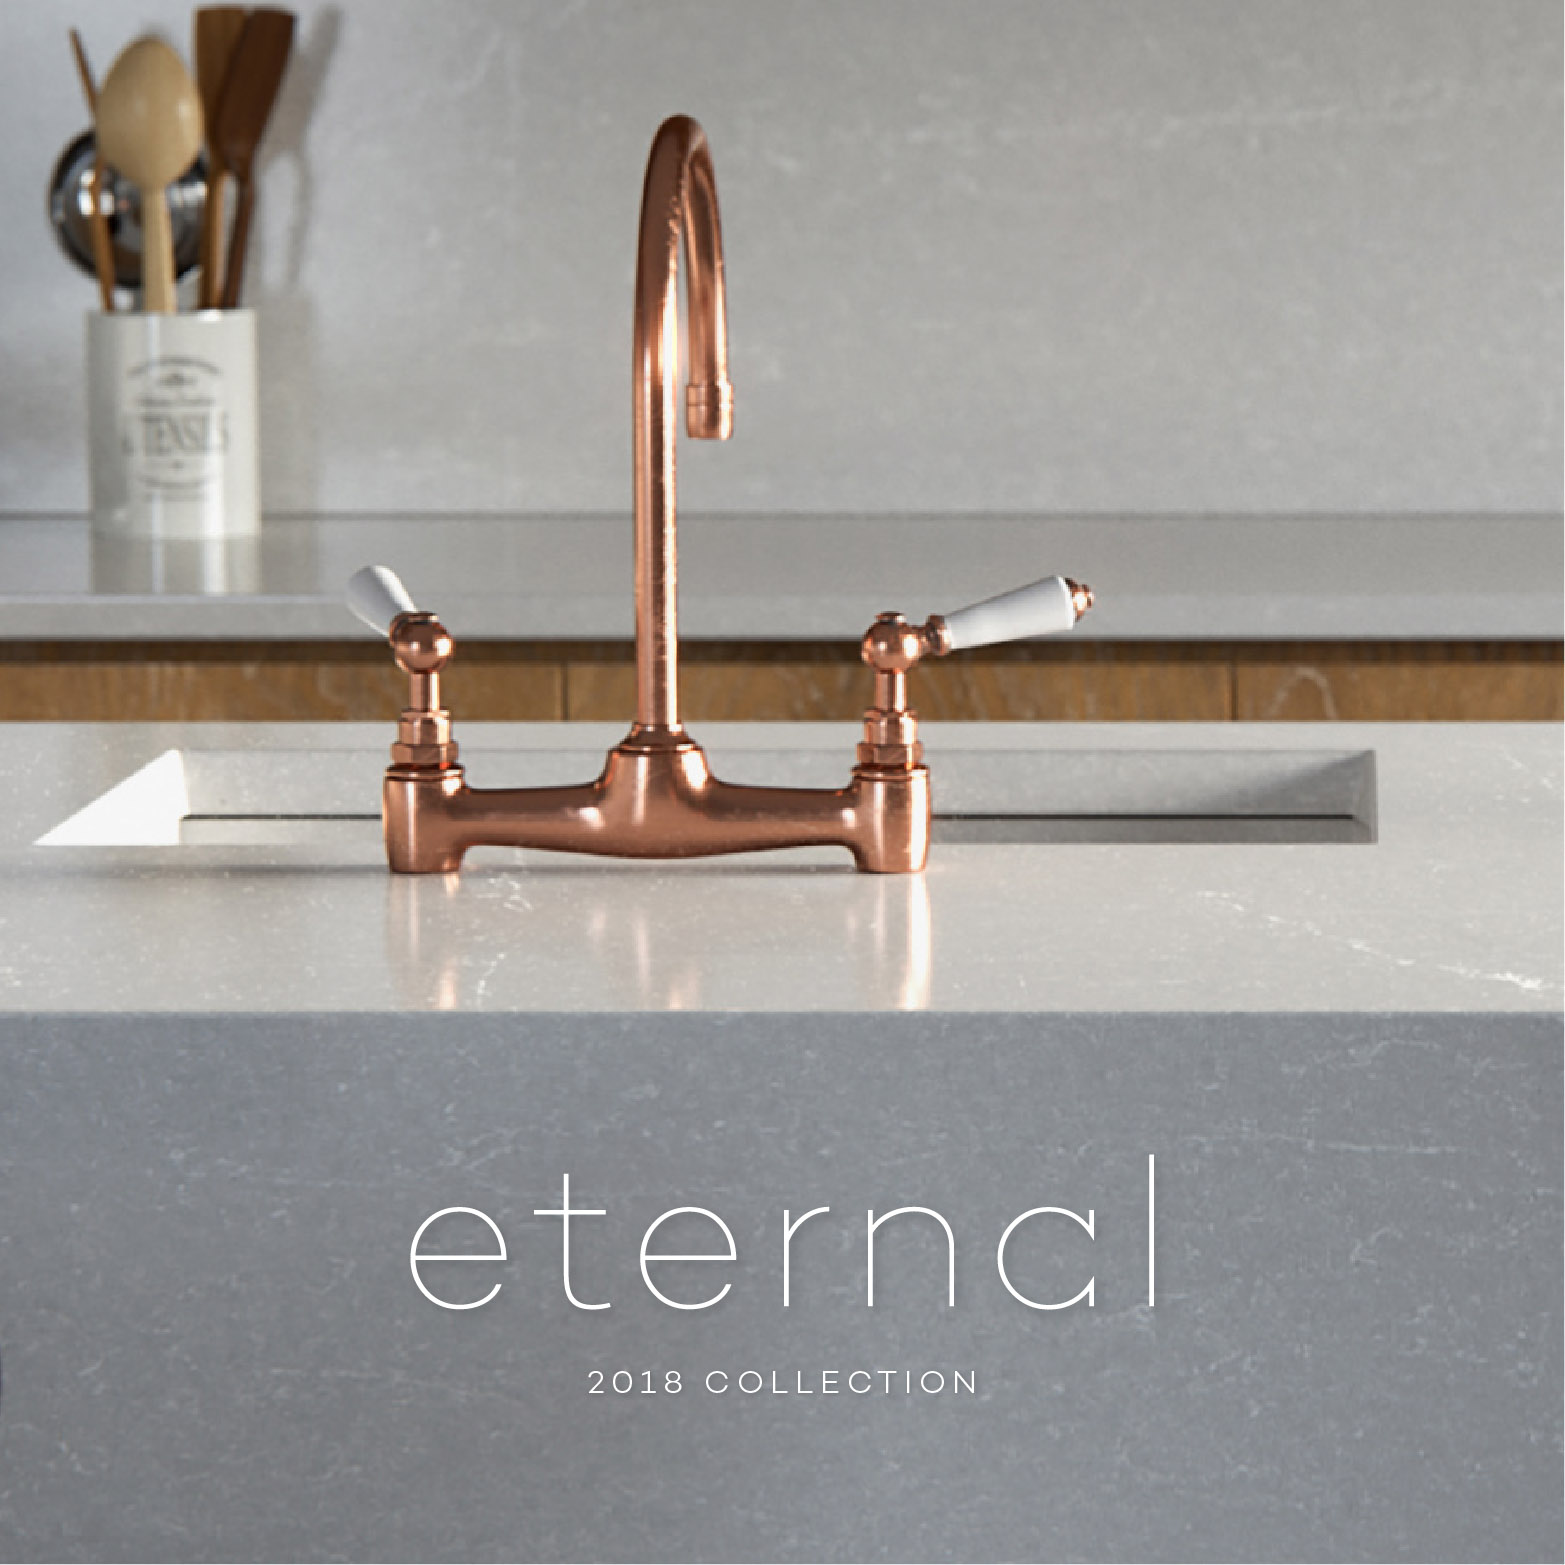 eternal-collection